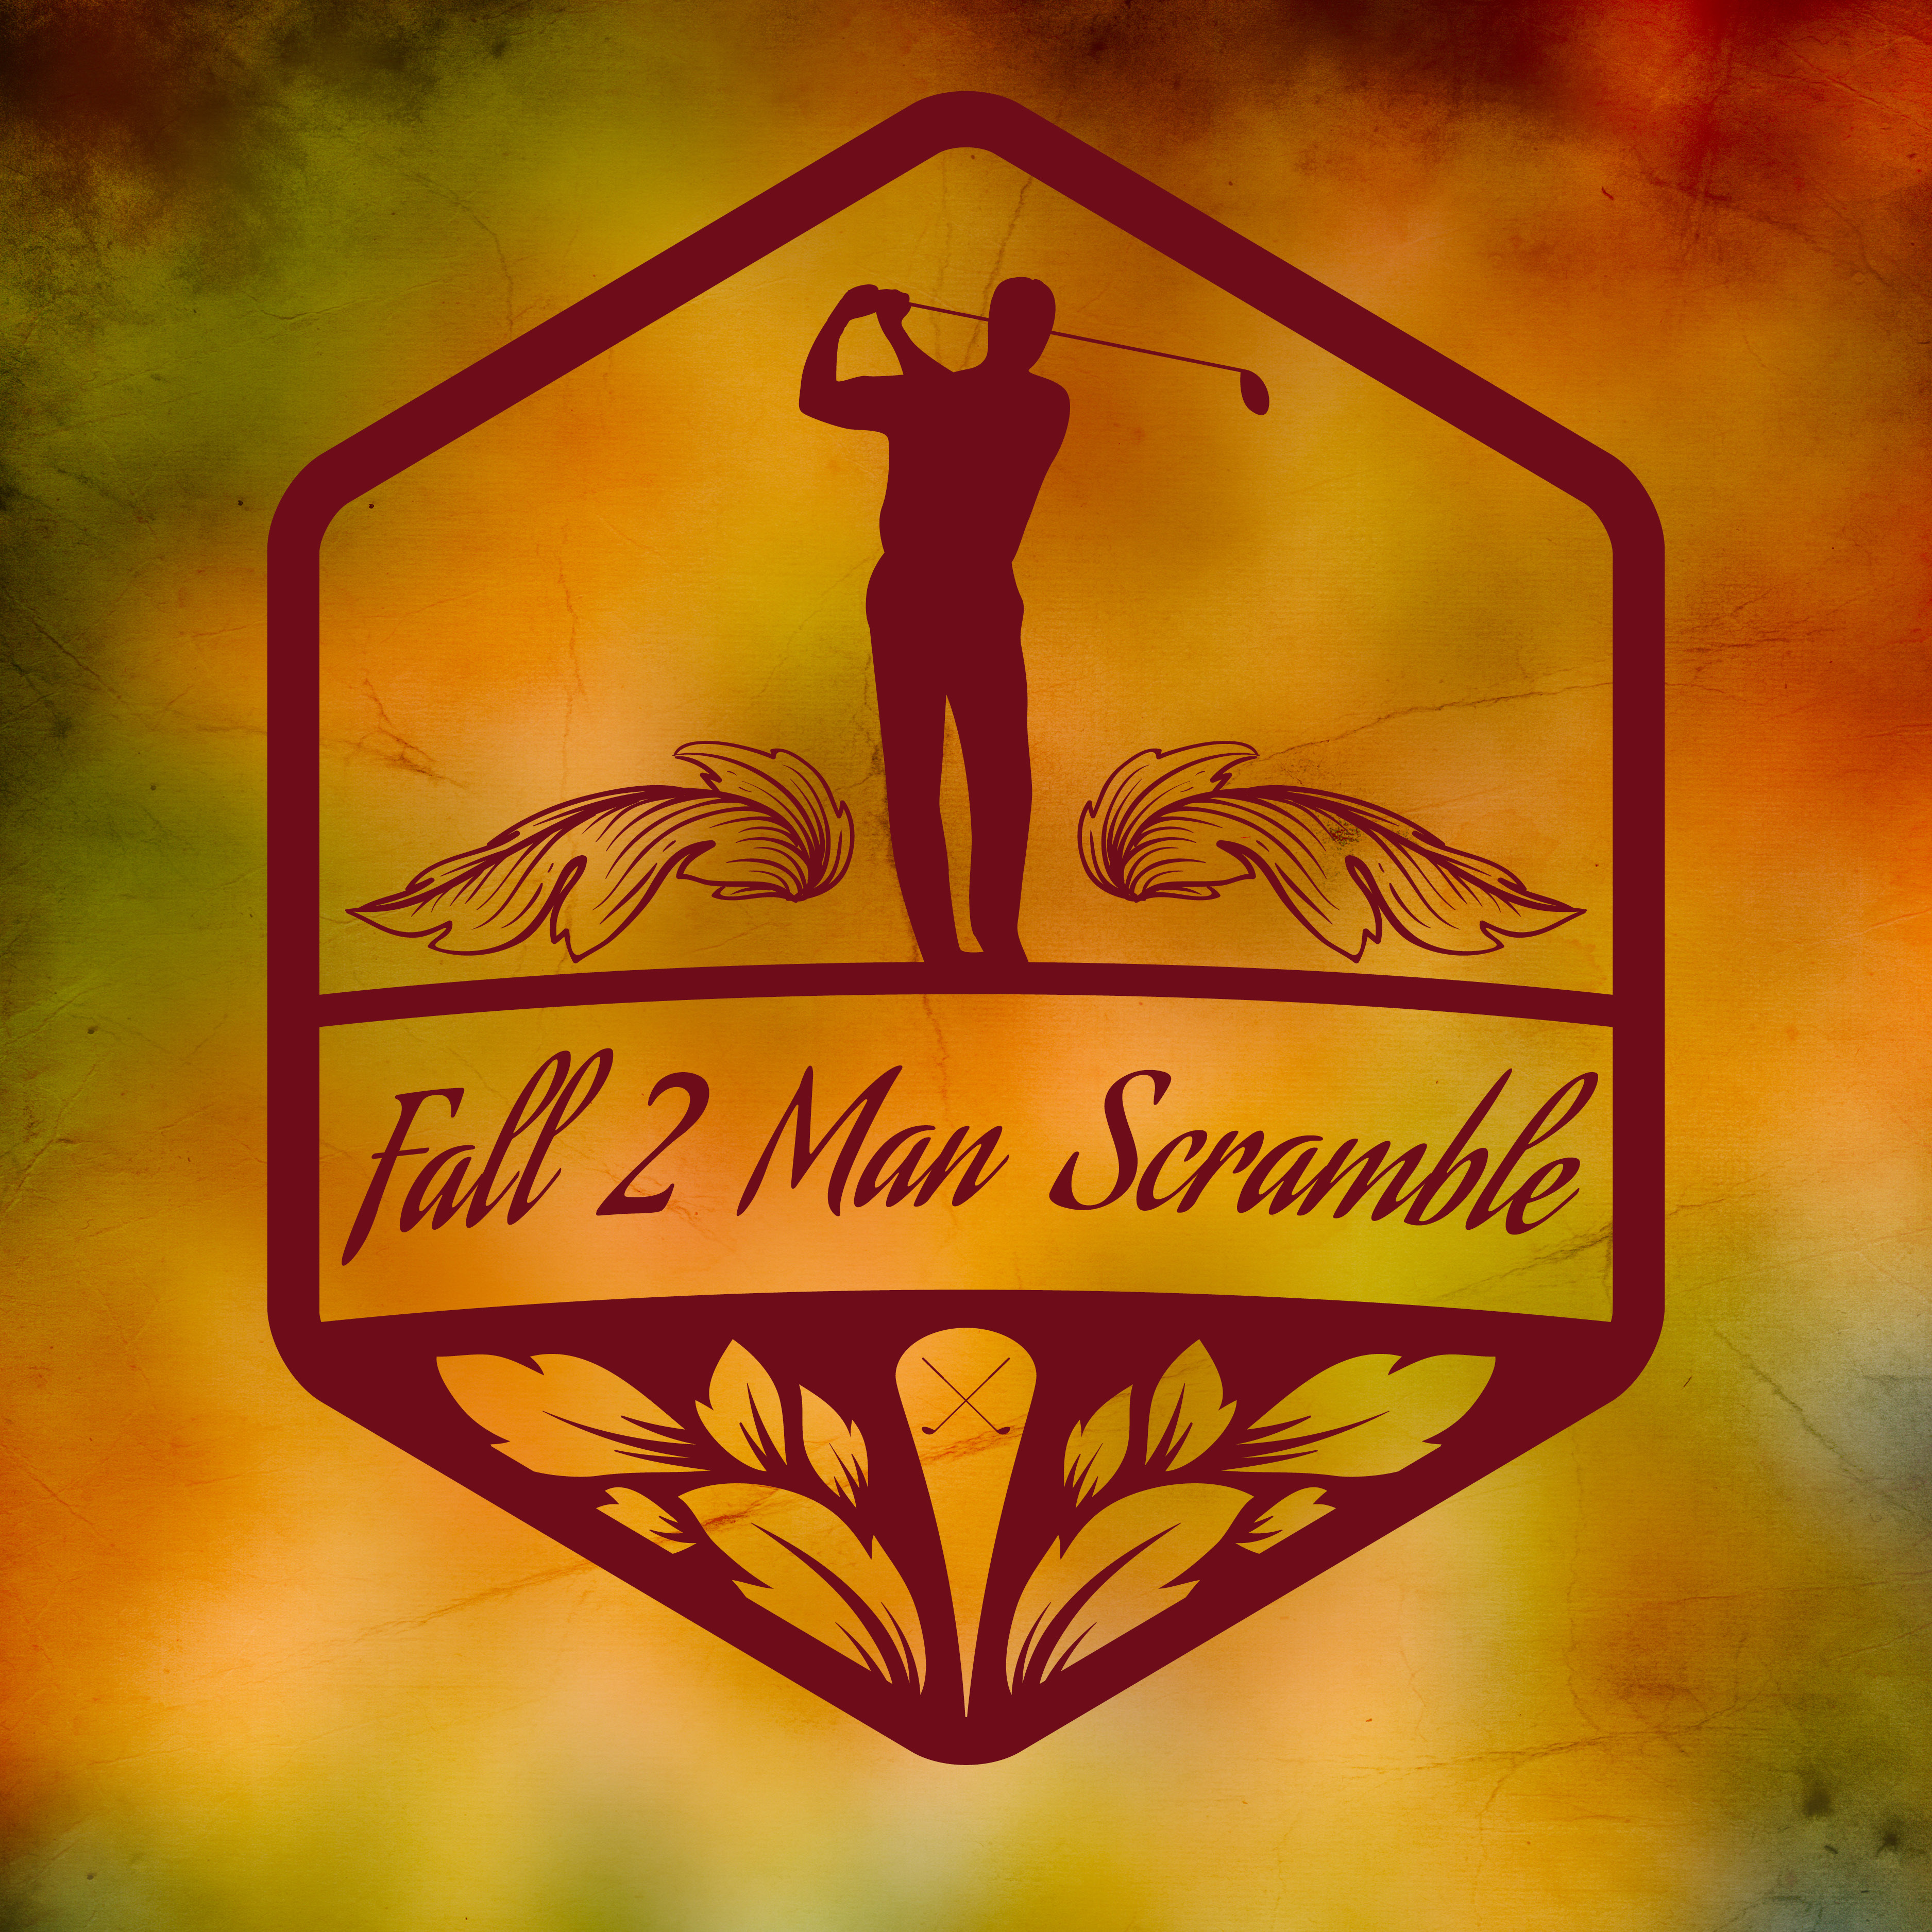 California 2 Man Fall Ball